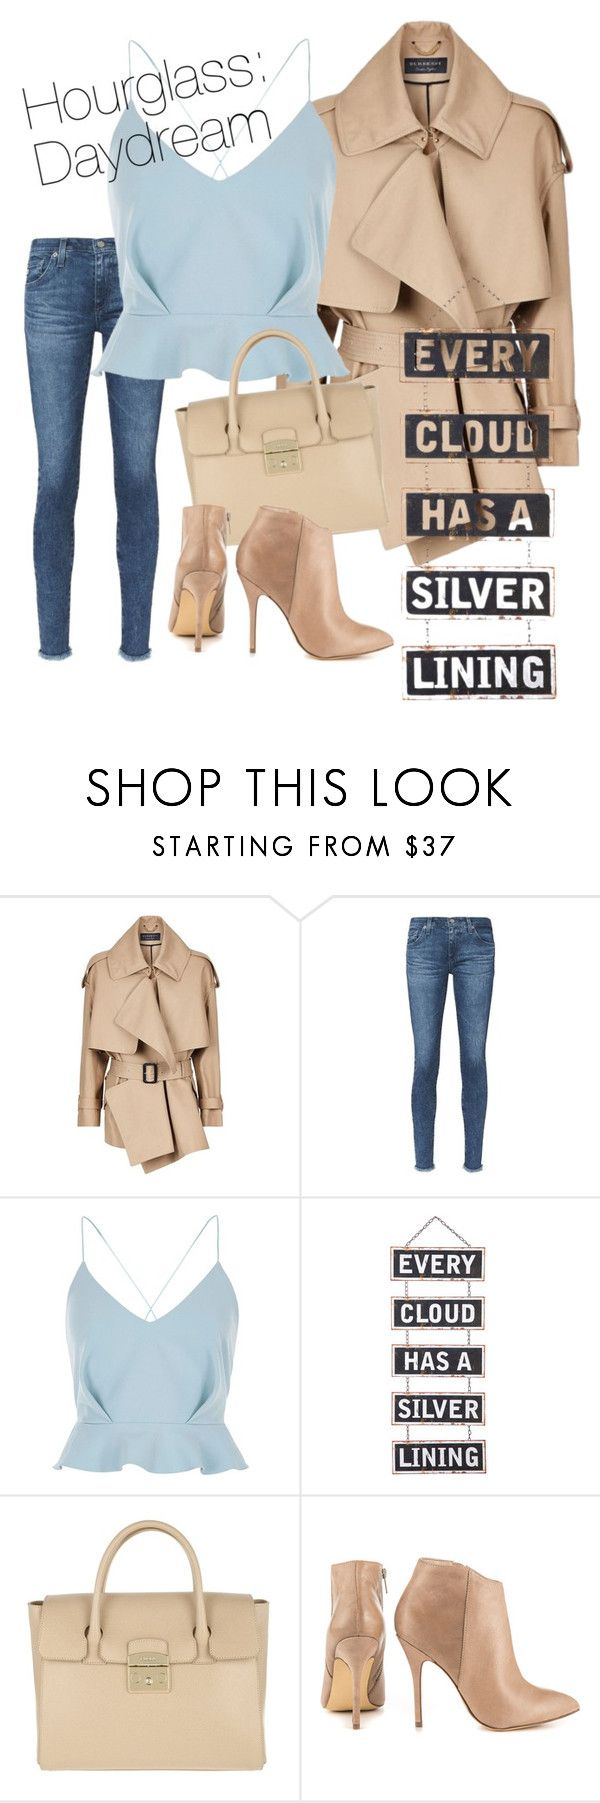 """Hourglass: Daydream"" by futurebloom on Polyvore featuring Burberry, AG Adriano Goldschmied, River Island, Silver Lining, Furla and Steve Madden"